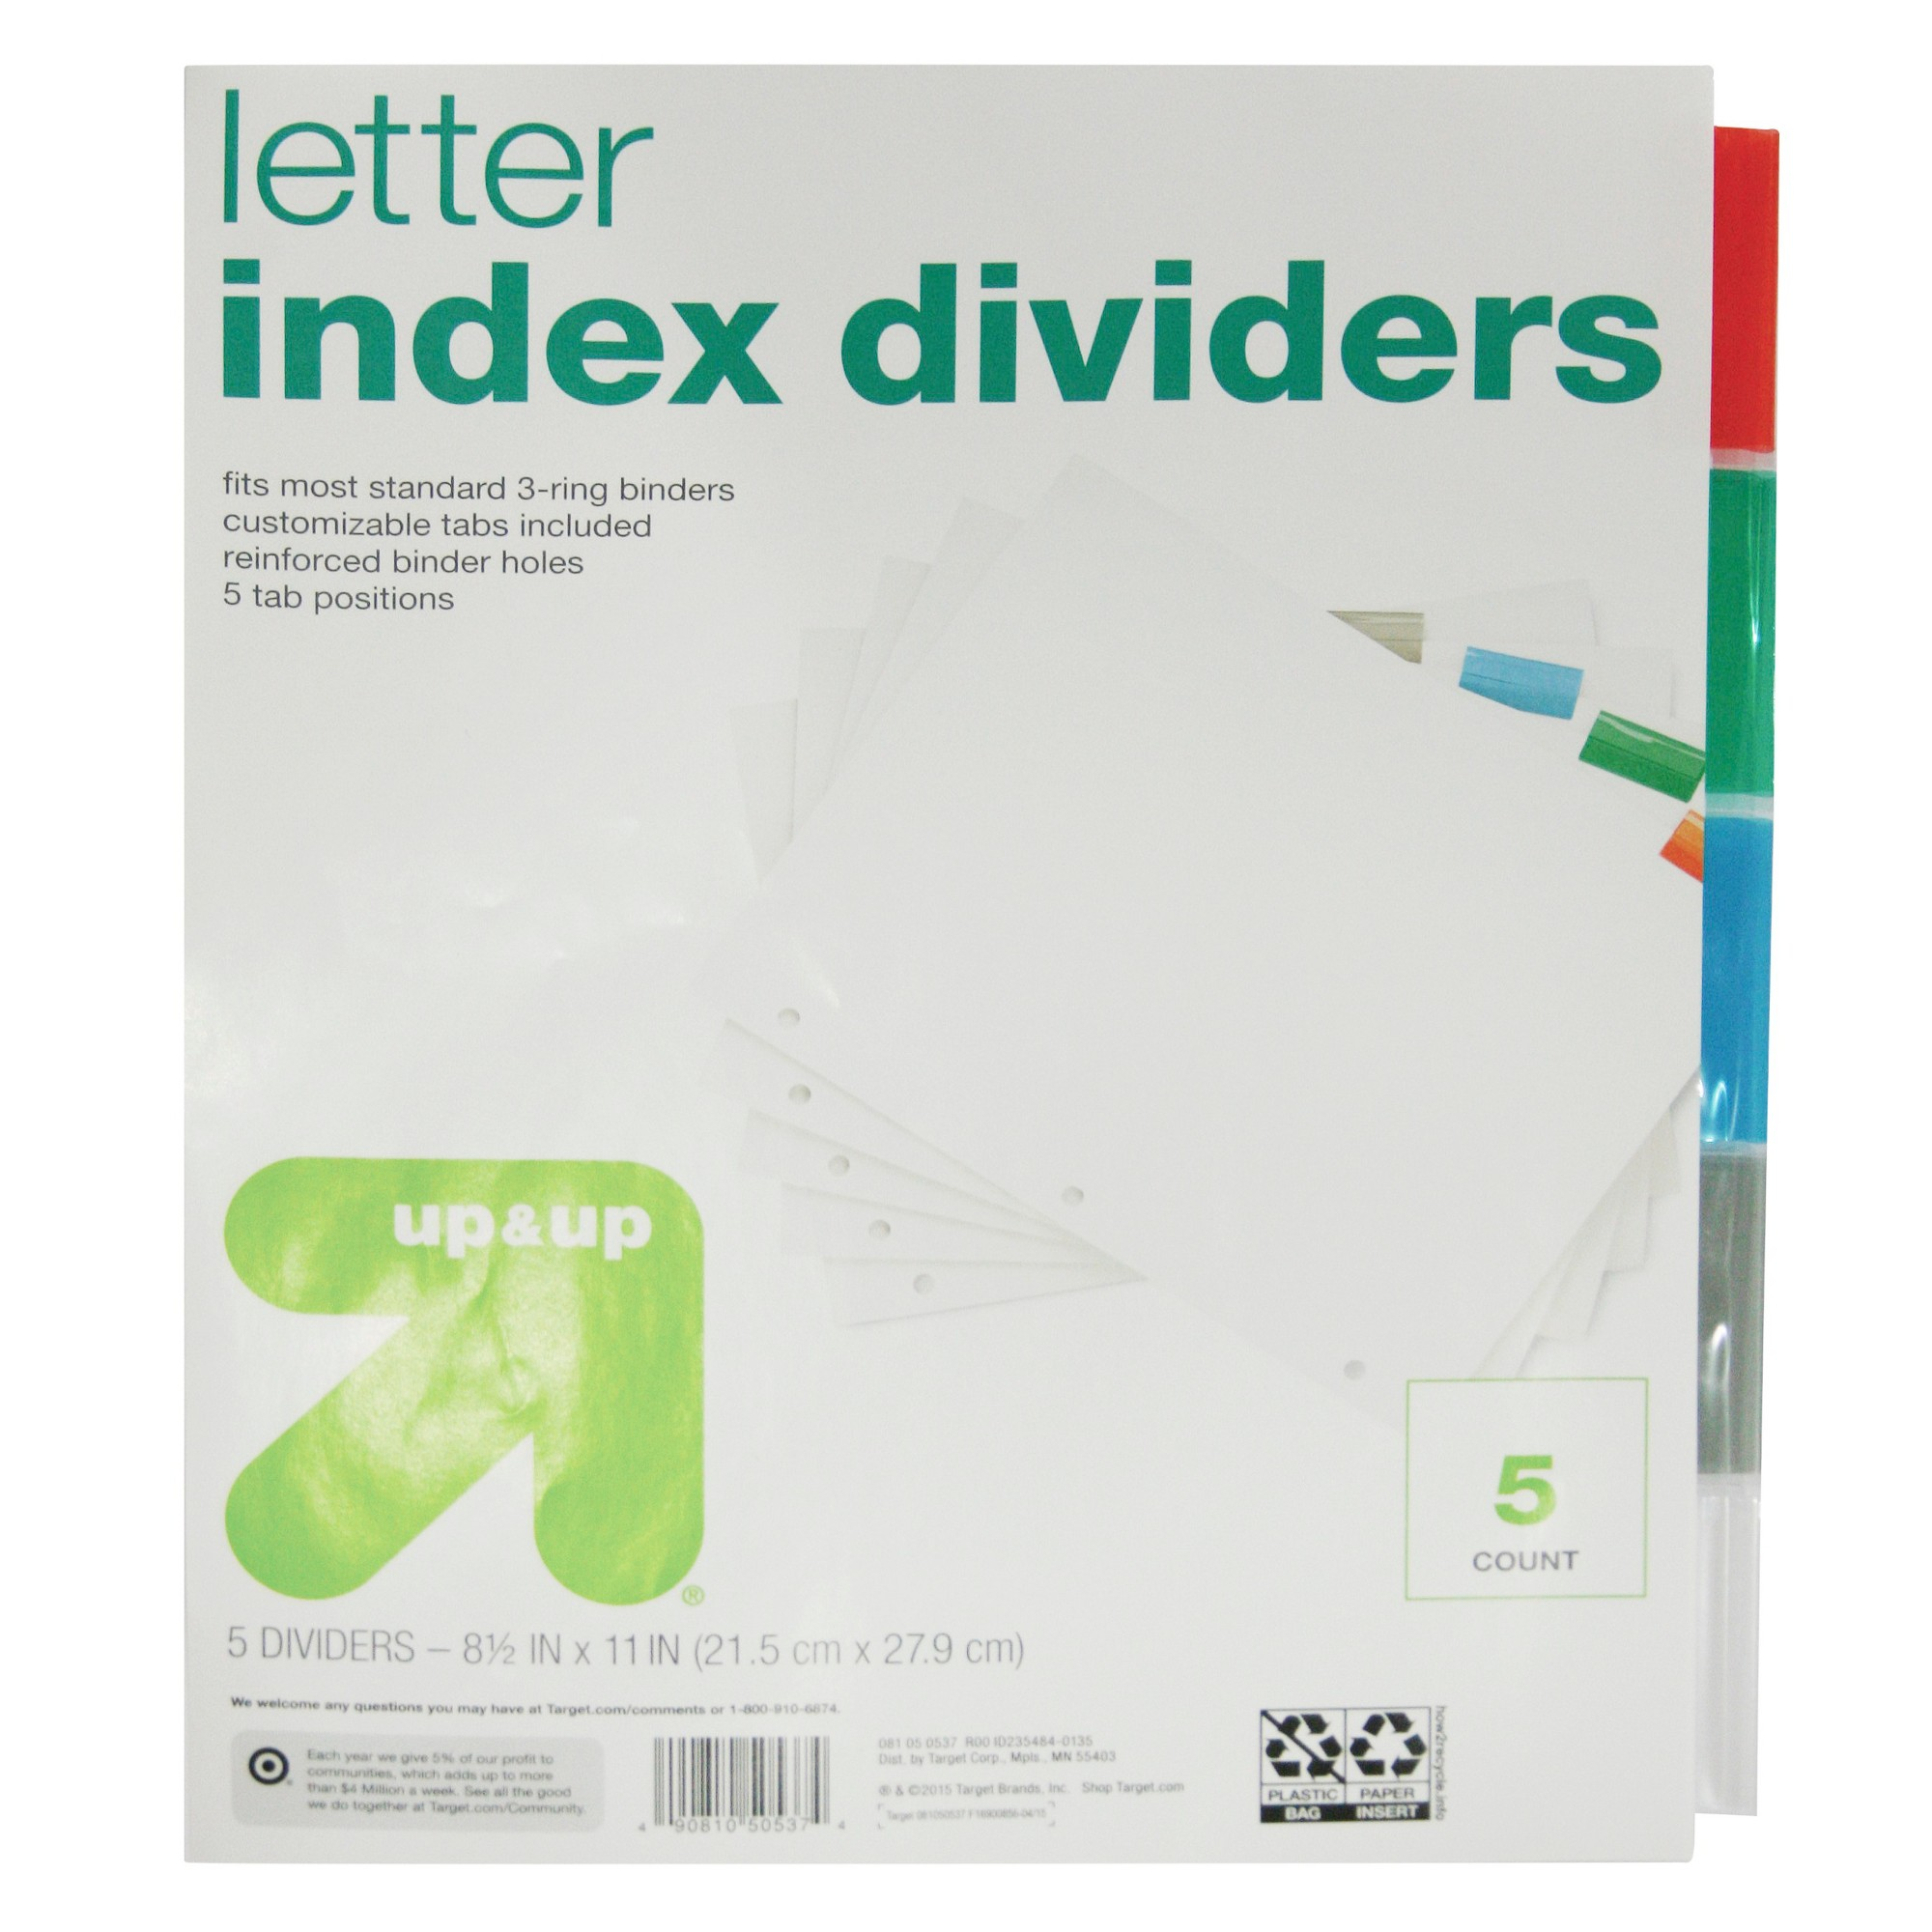 Letter Index Dividers 5ct - Up&Up , Clear